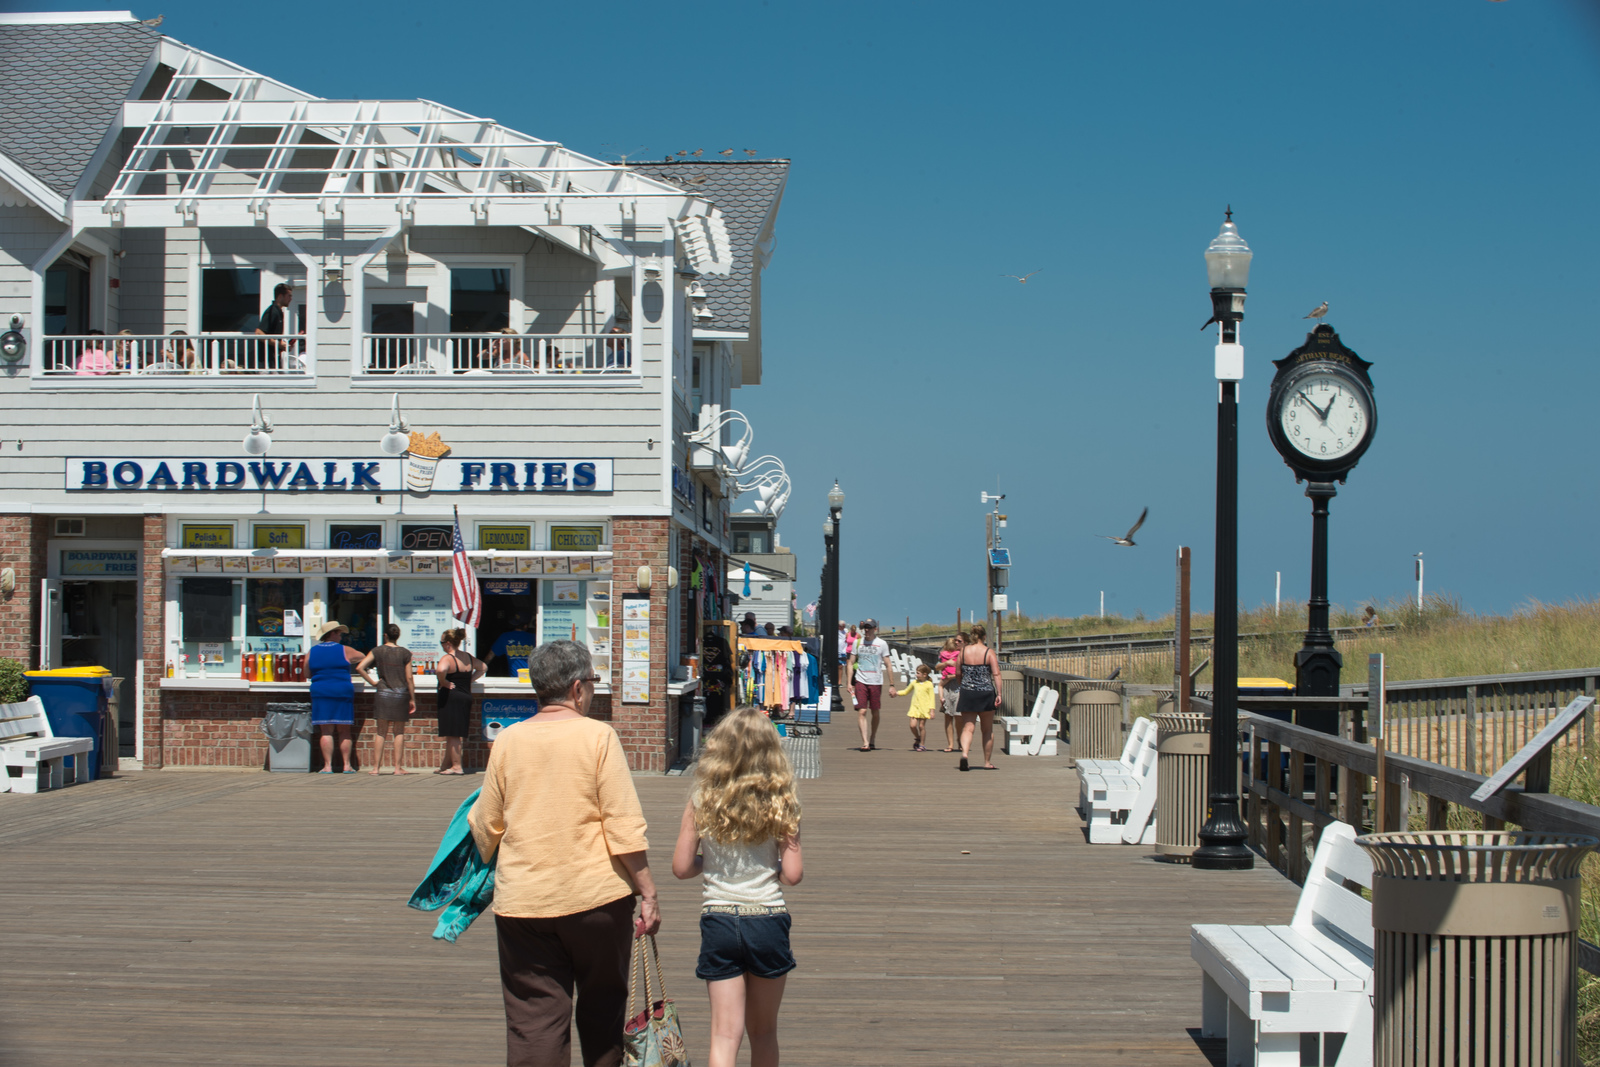 Take a stroll along the boardwalk and relax in the sunshine - at Seagrove you're located just minutes from Bethany Beach.